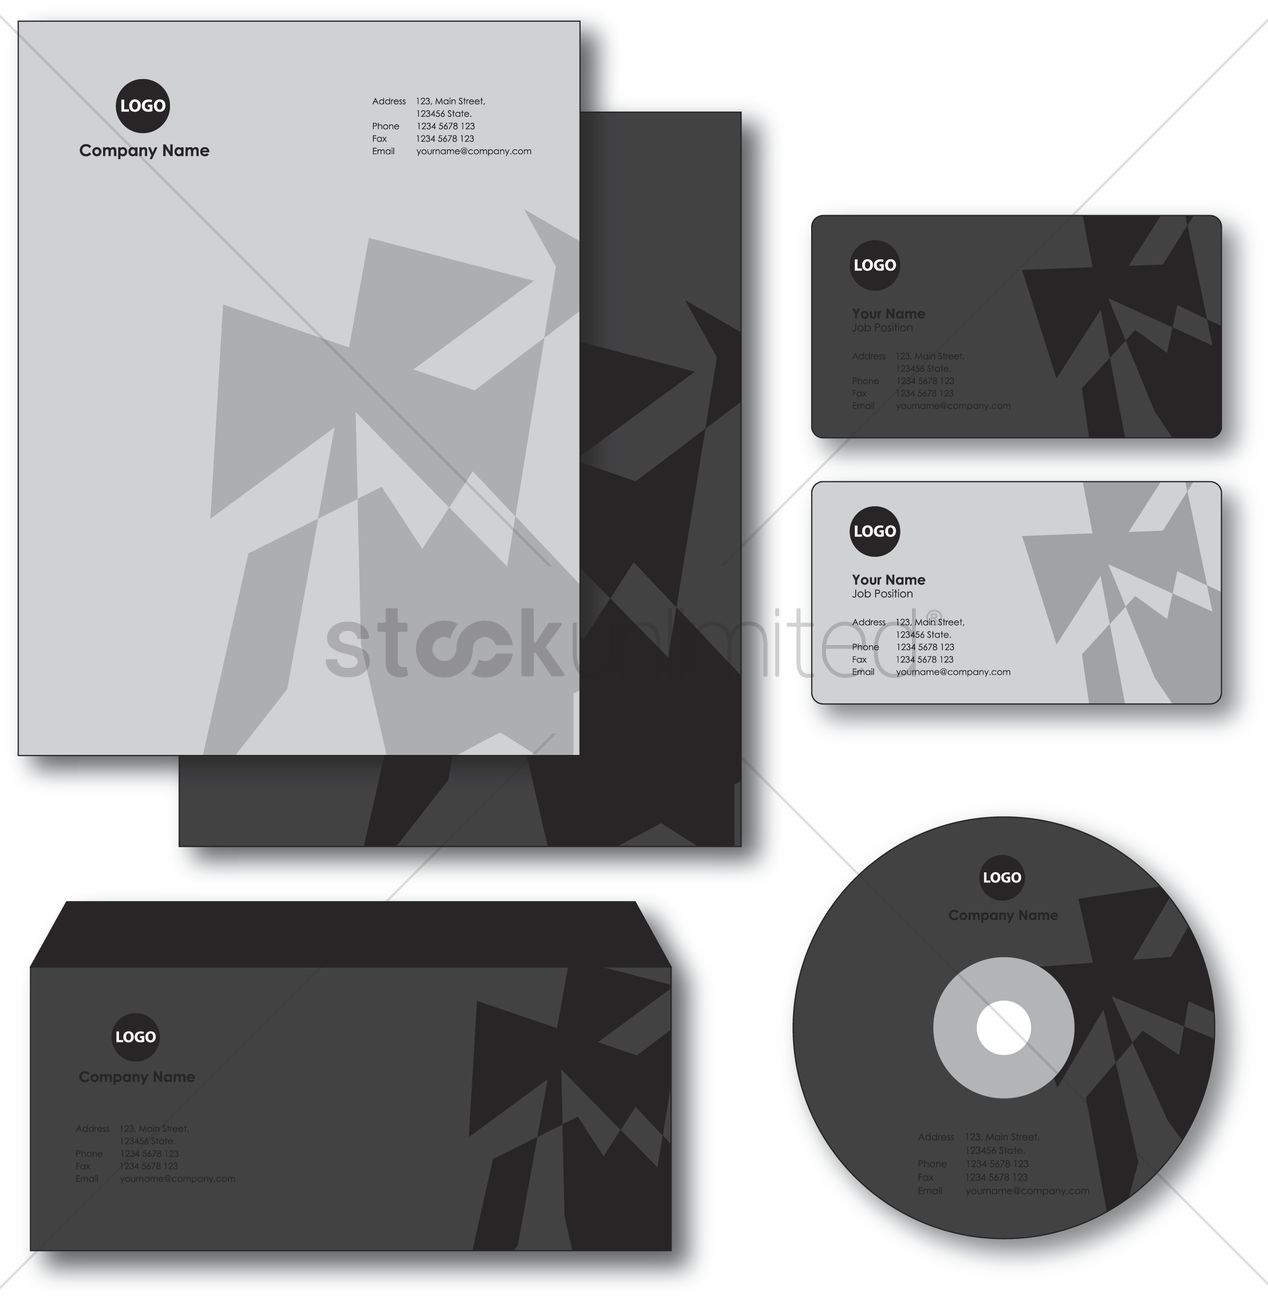 Company paper envelope business card and cd vector image 1235450 company paper envelope business card and cd vector graphic reheart Image collections